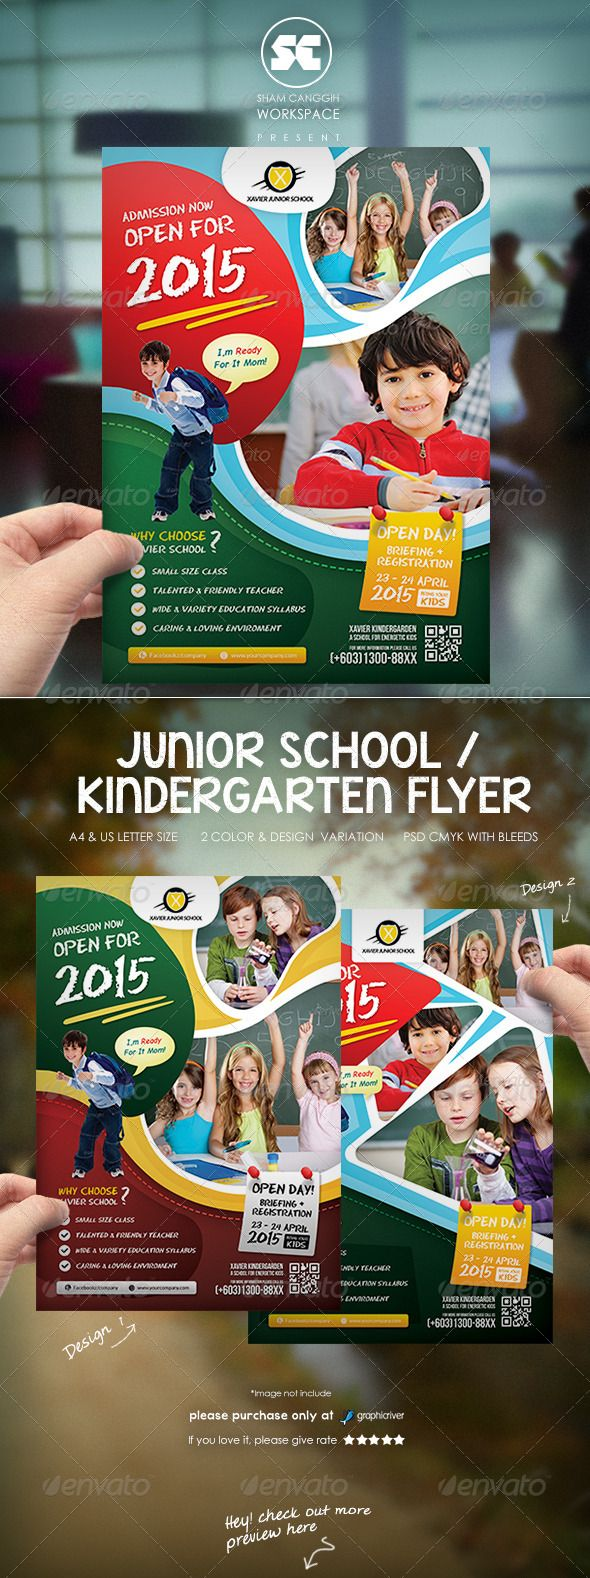 Kindergarten Junior School Flyer — Photoshop PSD #admission #promotion • Available here → https://graphicriver.net/item/kindergarten-junior-school-flyer/7524968?ref=pxcr